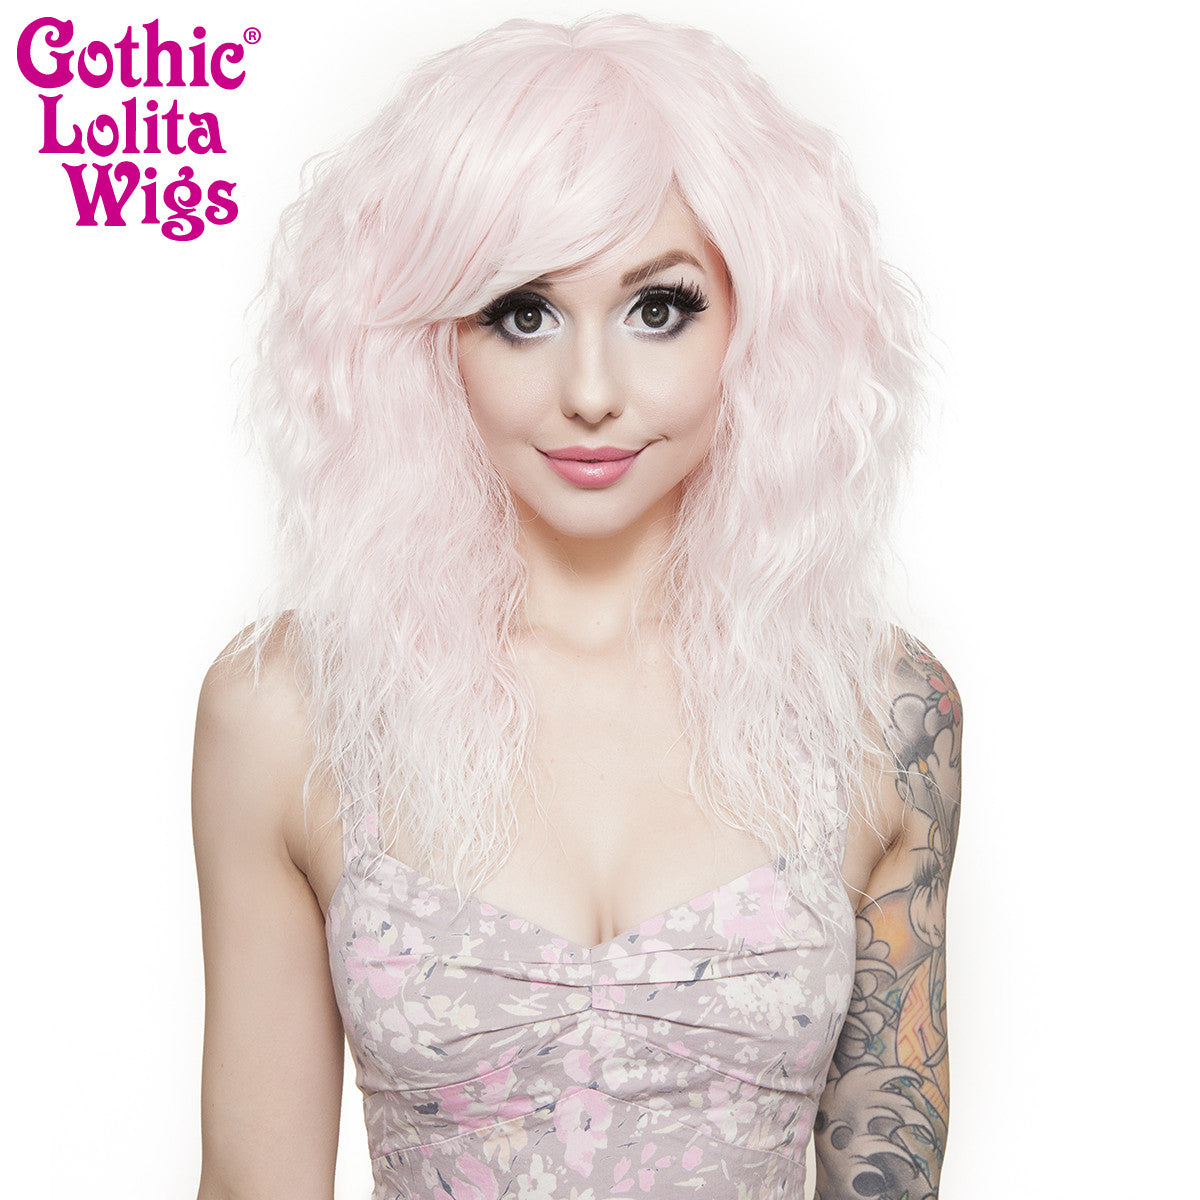 Gothic Lolita Wigs® <br> Rhapsody Short™ Collection - Pink to White Fade -00894